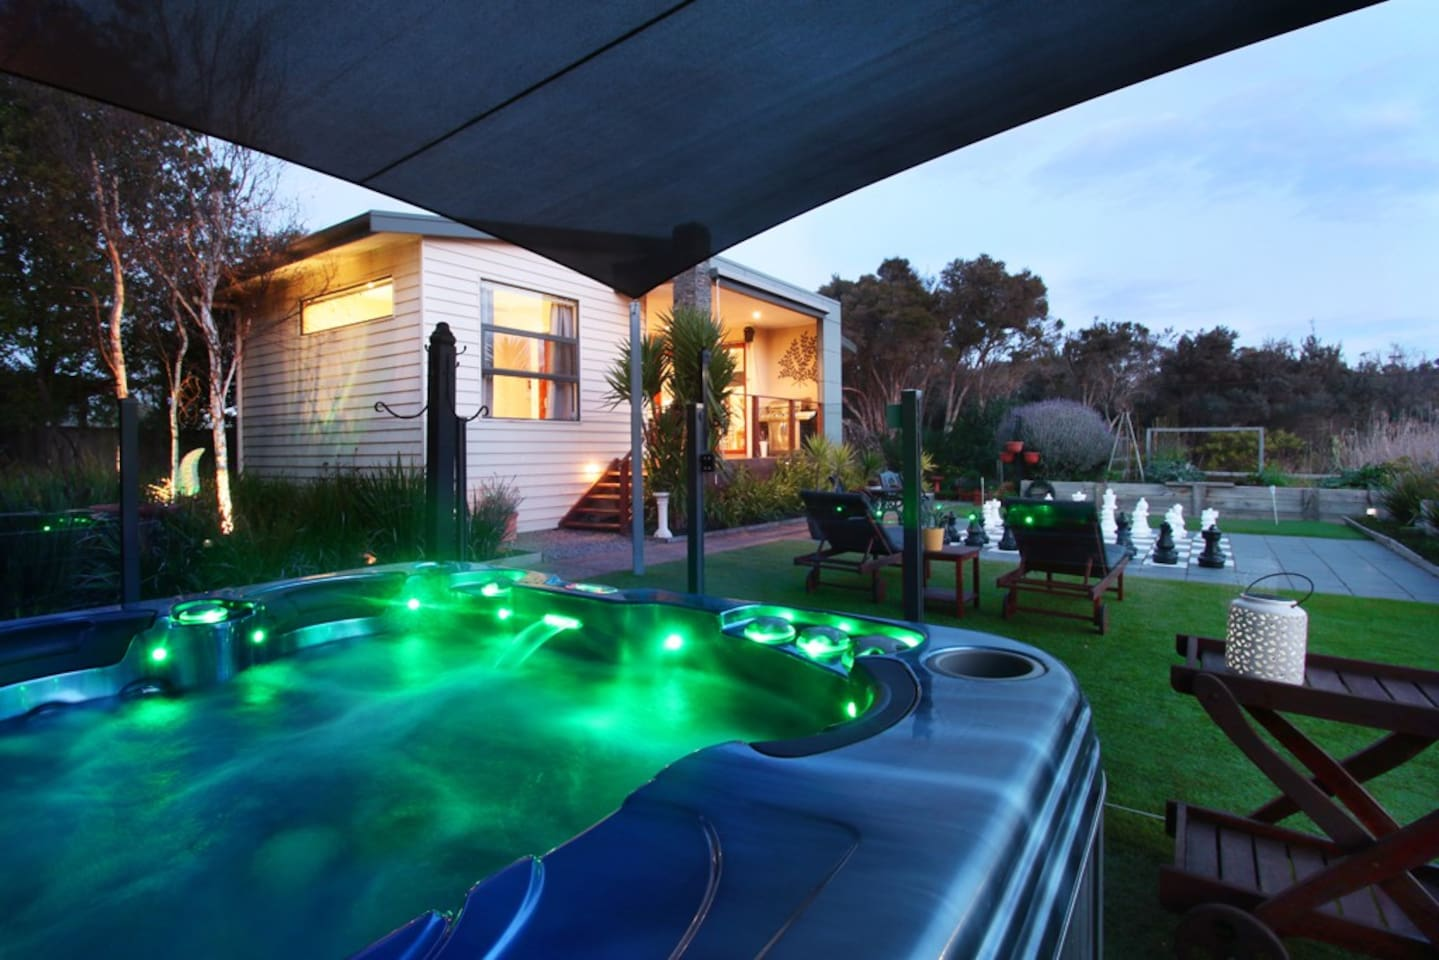 After a day of exploring the Mornington Peninsula, relax in the outdoor heated spa with view over the cottage, garden & giant chess set, and let the jets relax your muscles.